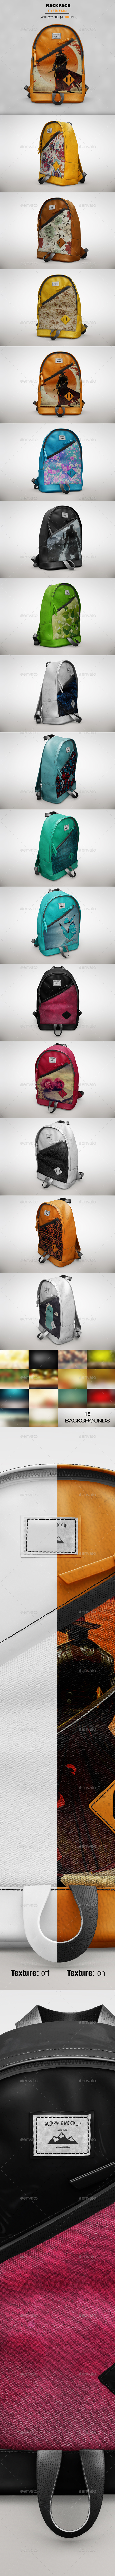 BackPack Mockup - Product Mock-Ups Graphics